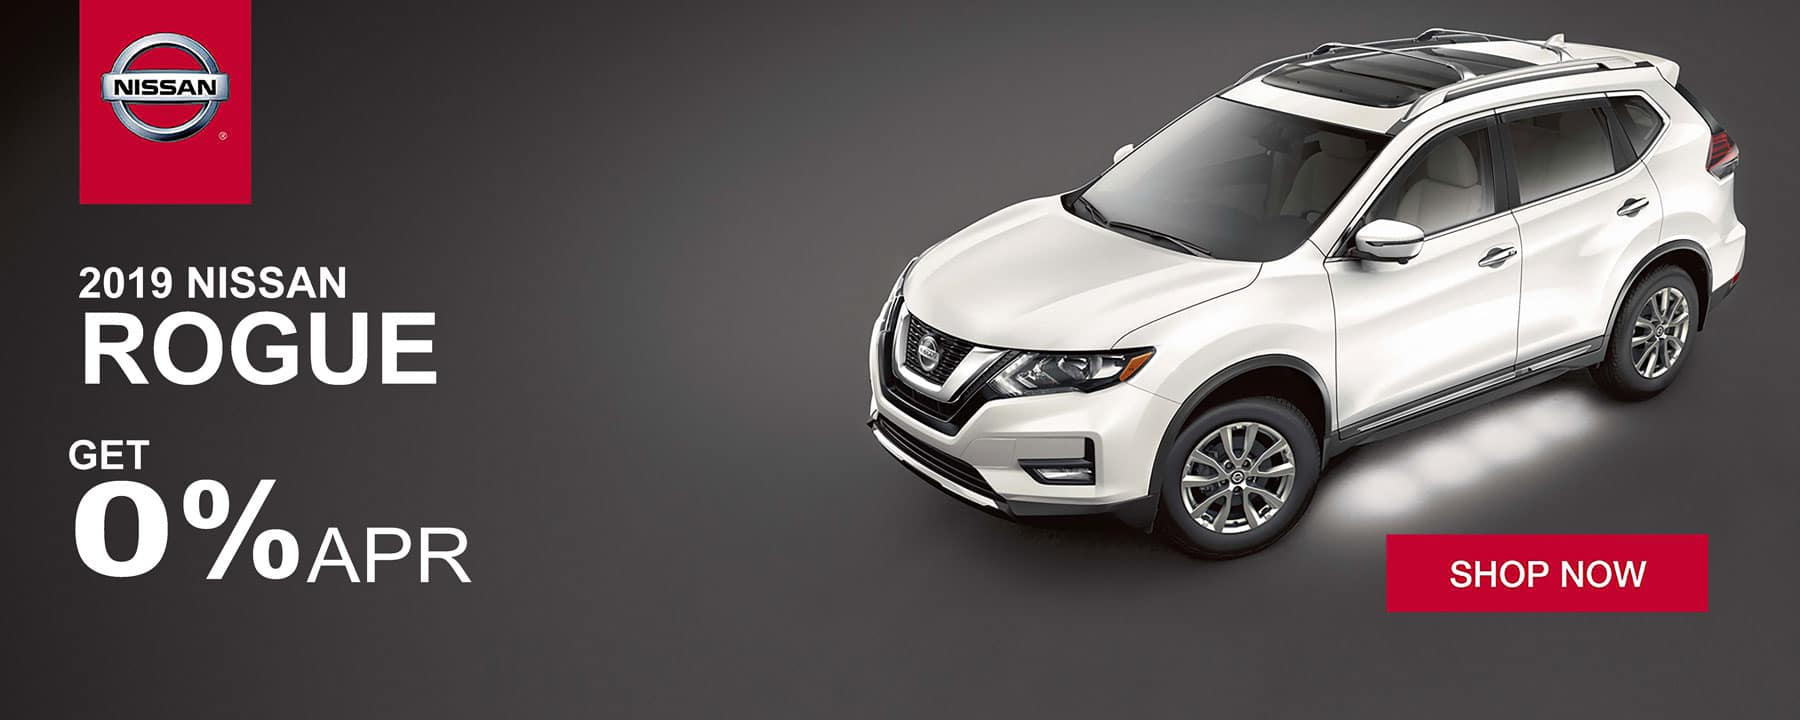 Shop the 2019 Nissan Rogue NOW at Star Nissan!